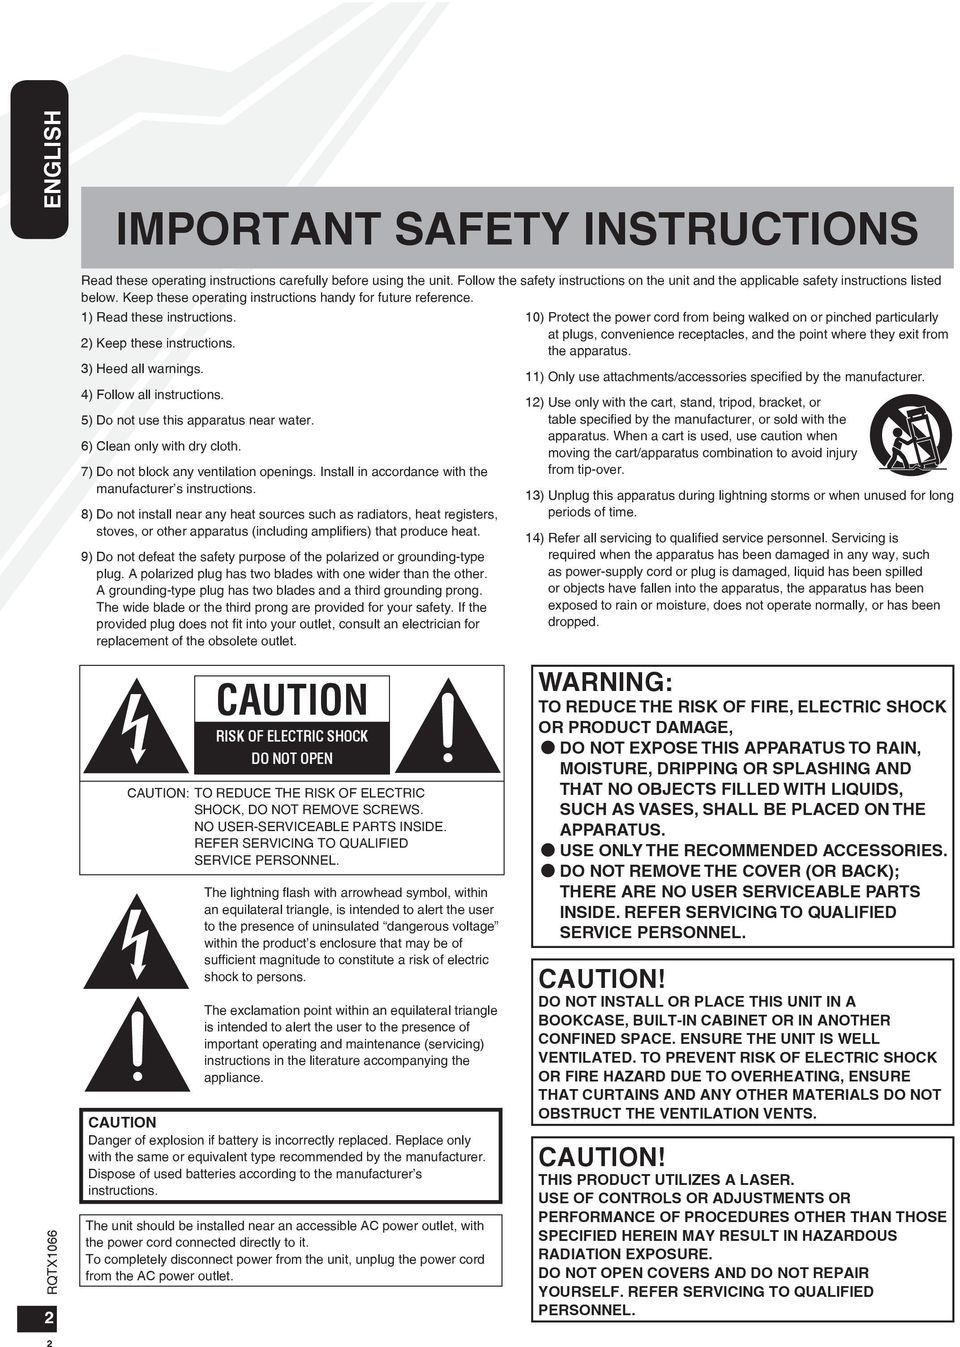 Follow the safety instructions on the unit and the applicable safety instructions listed below. Keep these operating instructions handy for future reference. 1) Read these instructions.